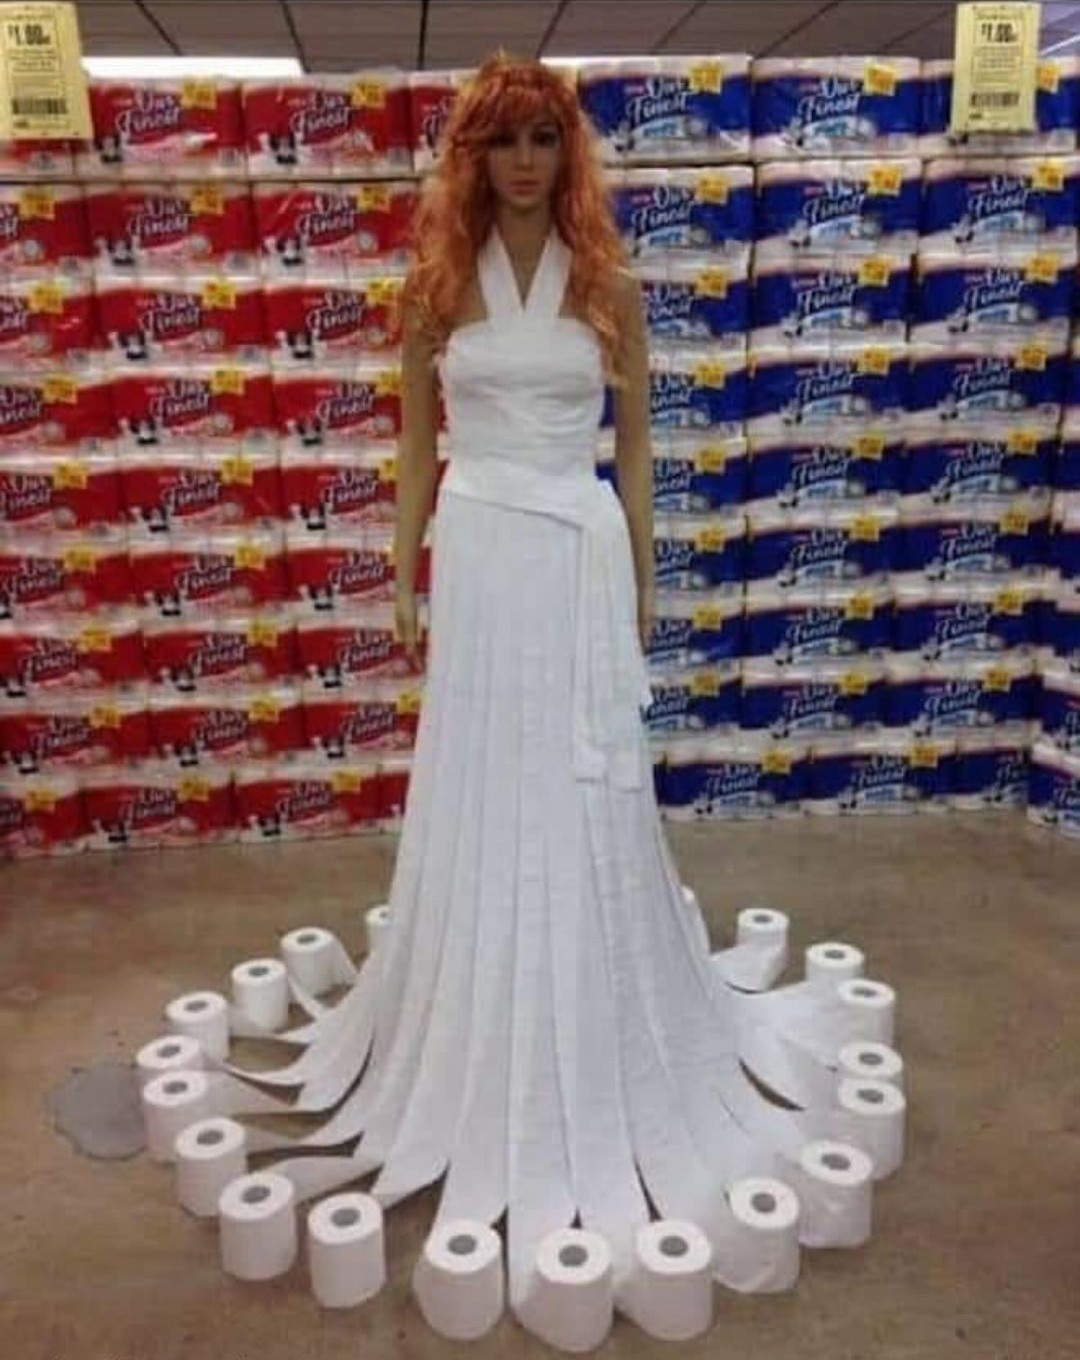 most expensive dress in history - meme